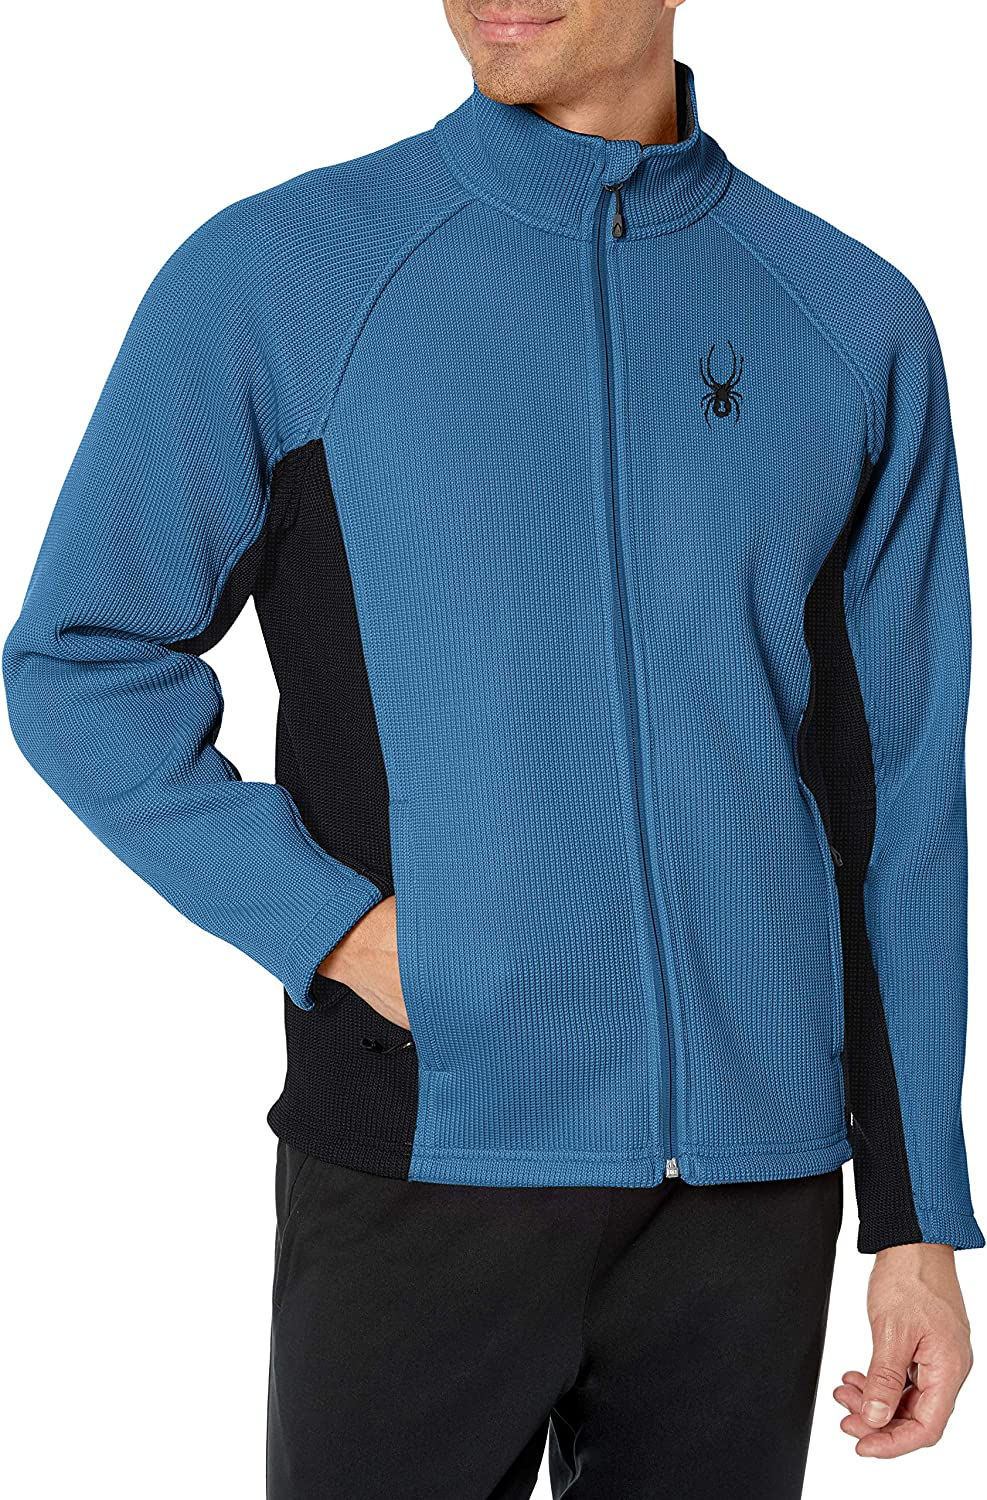 Spyder Men's Foremost Challenge the lowest price of Japan ☆ Full Zip Heavy Ranking TOP20 Wt Jacket Stryke